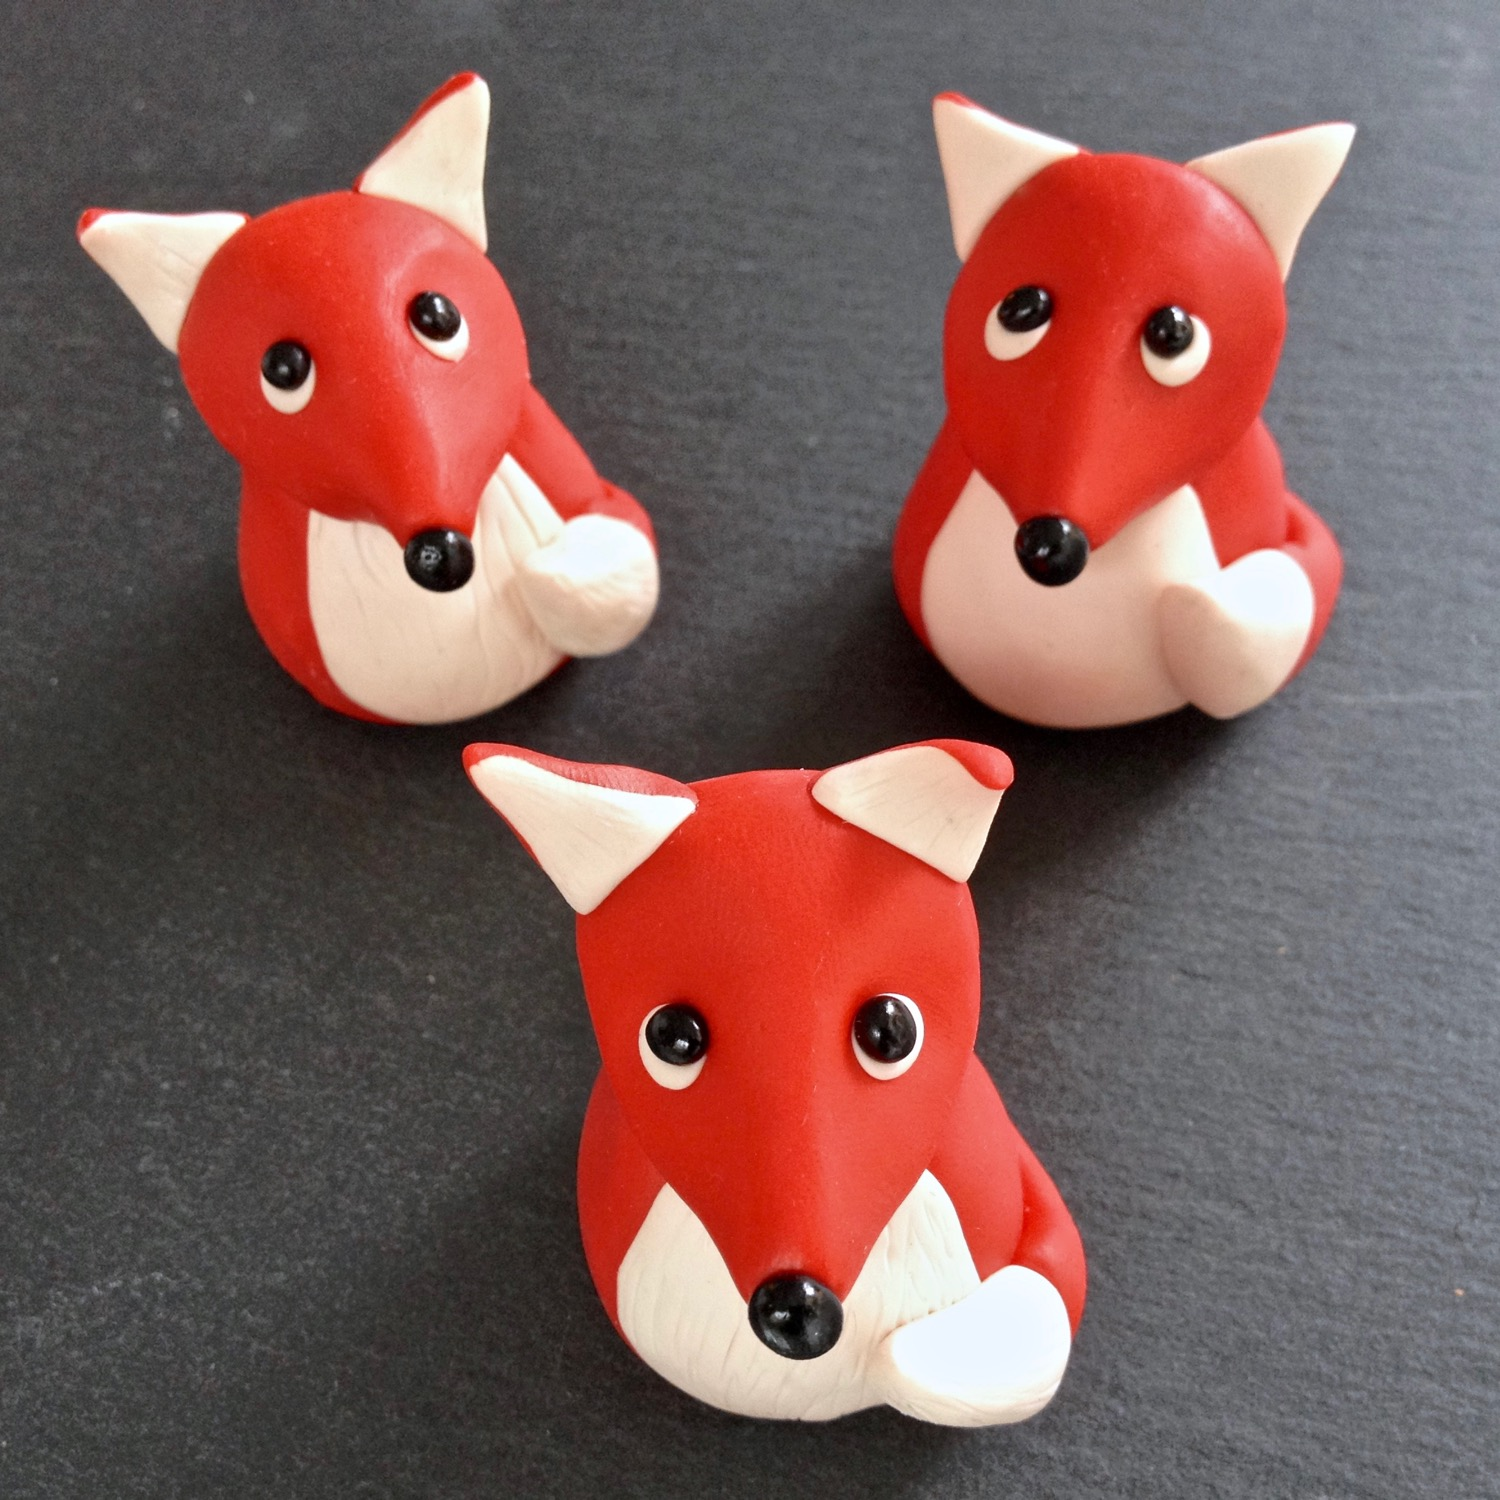 Handmade Fimo polymer clay fox figurines by Laura Mirjami